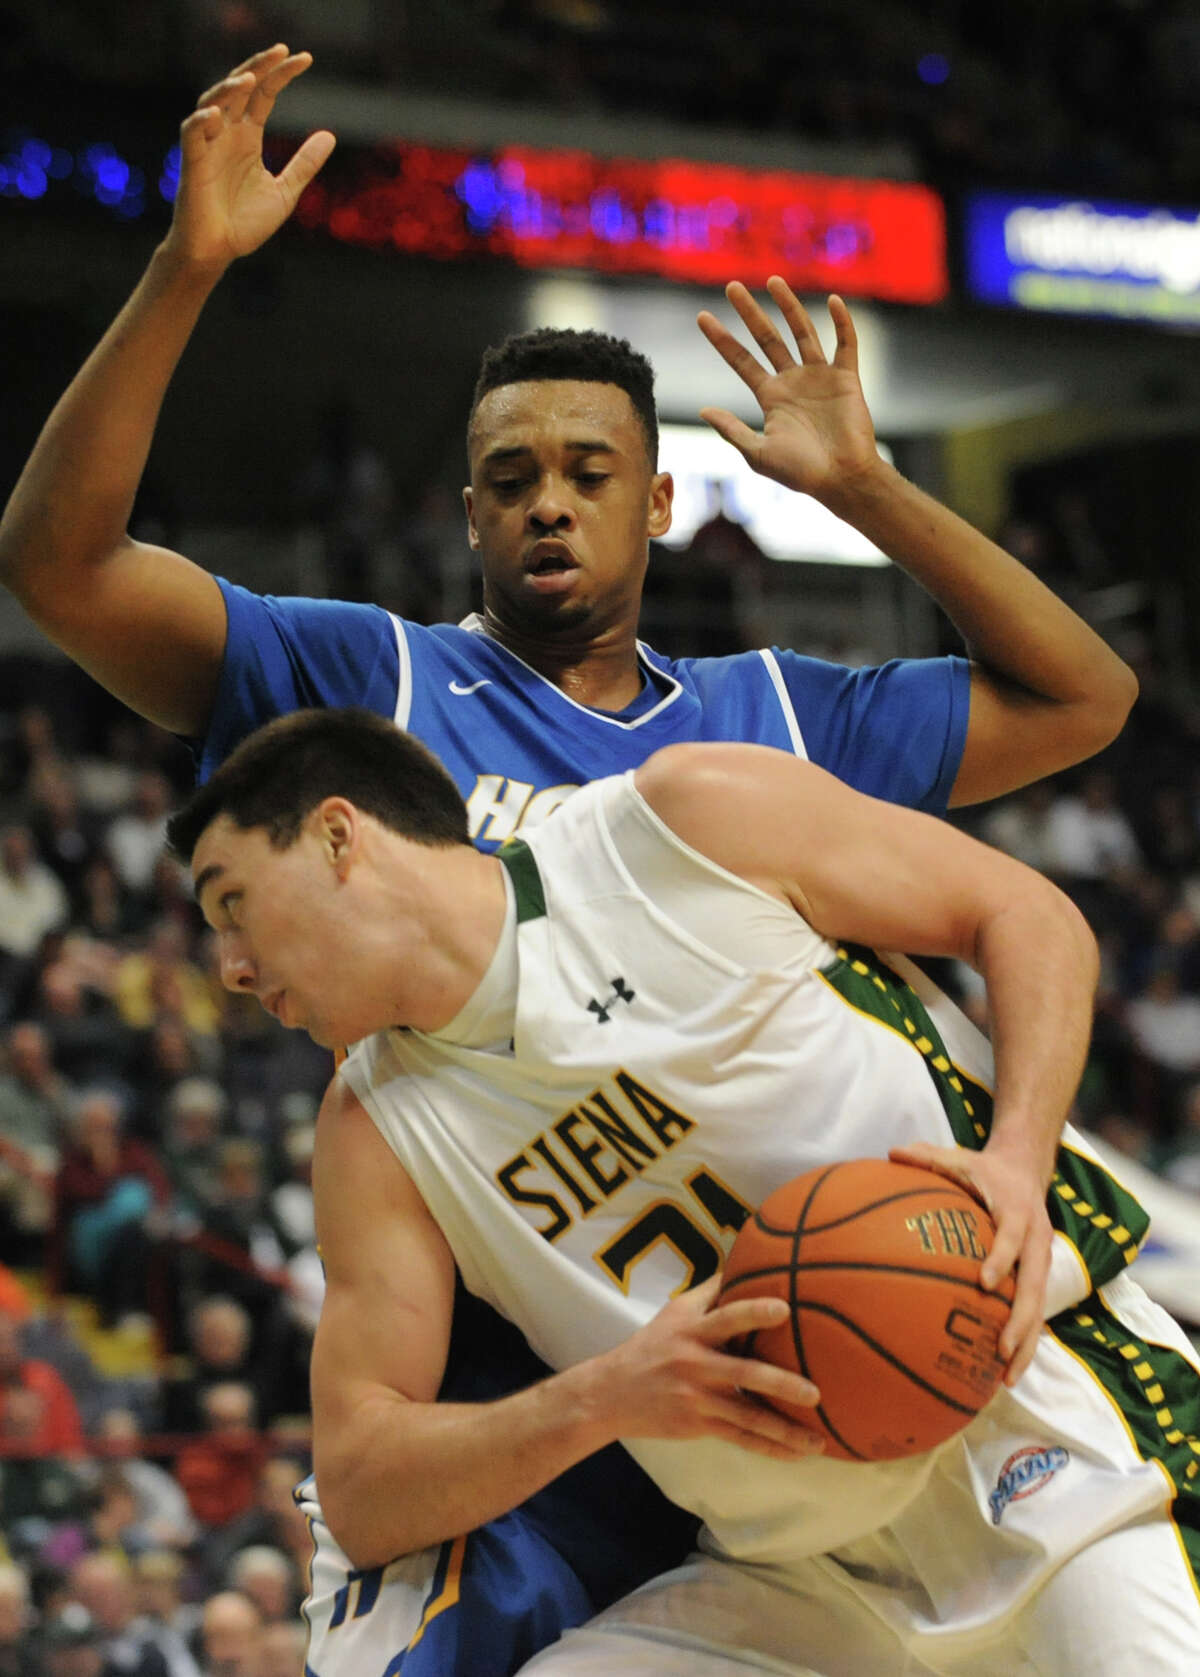 Siena's Brett Bisping is guarded by Hofstra's Zeke Upshaw during a basketball game at the Times Union Center on Monday, Dec. 23, 2013 in Albany, N.Y. (Lori Van Buren / Times Union)